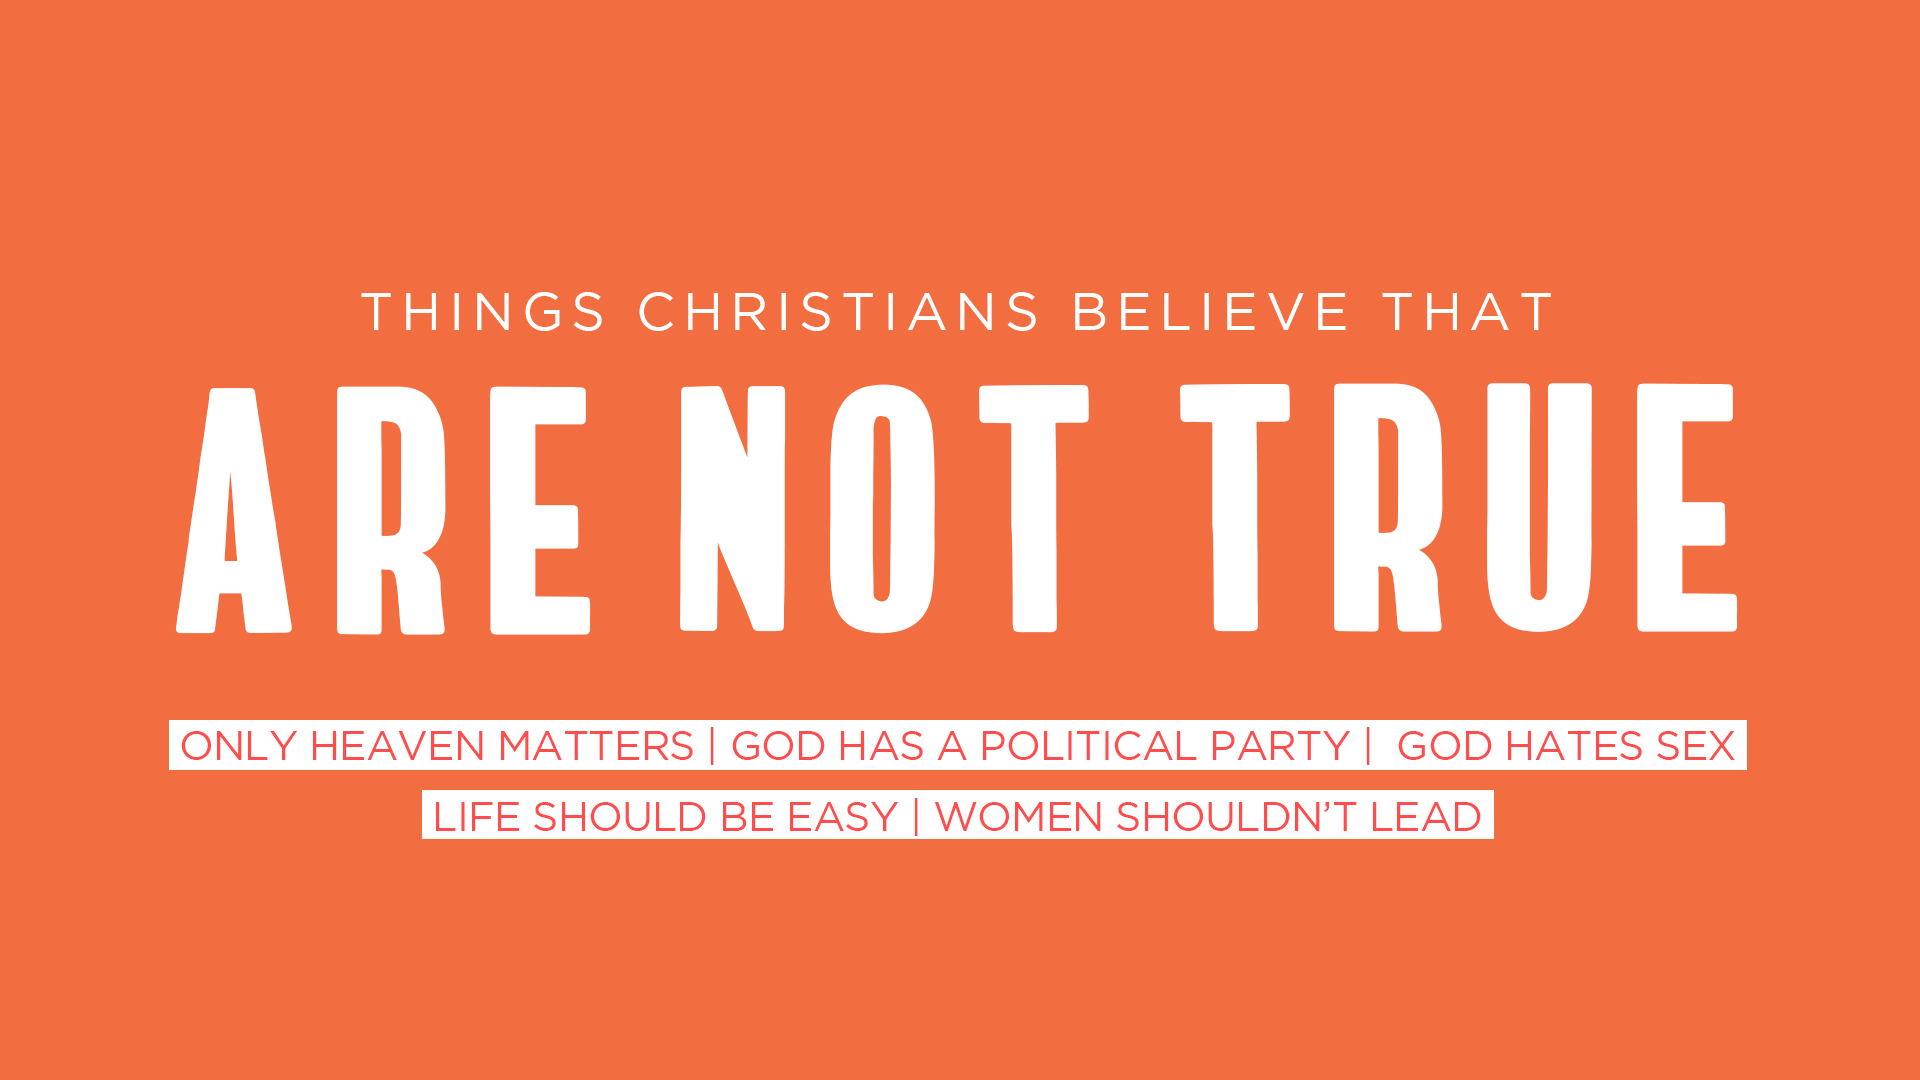 Things Christians Believe That Are Not True